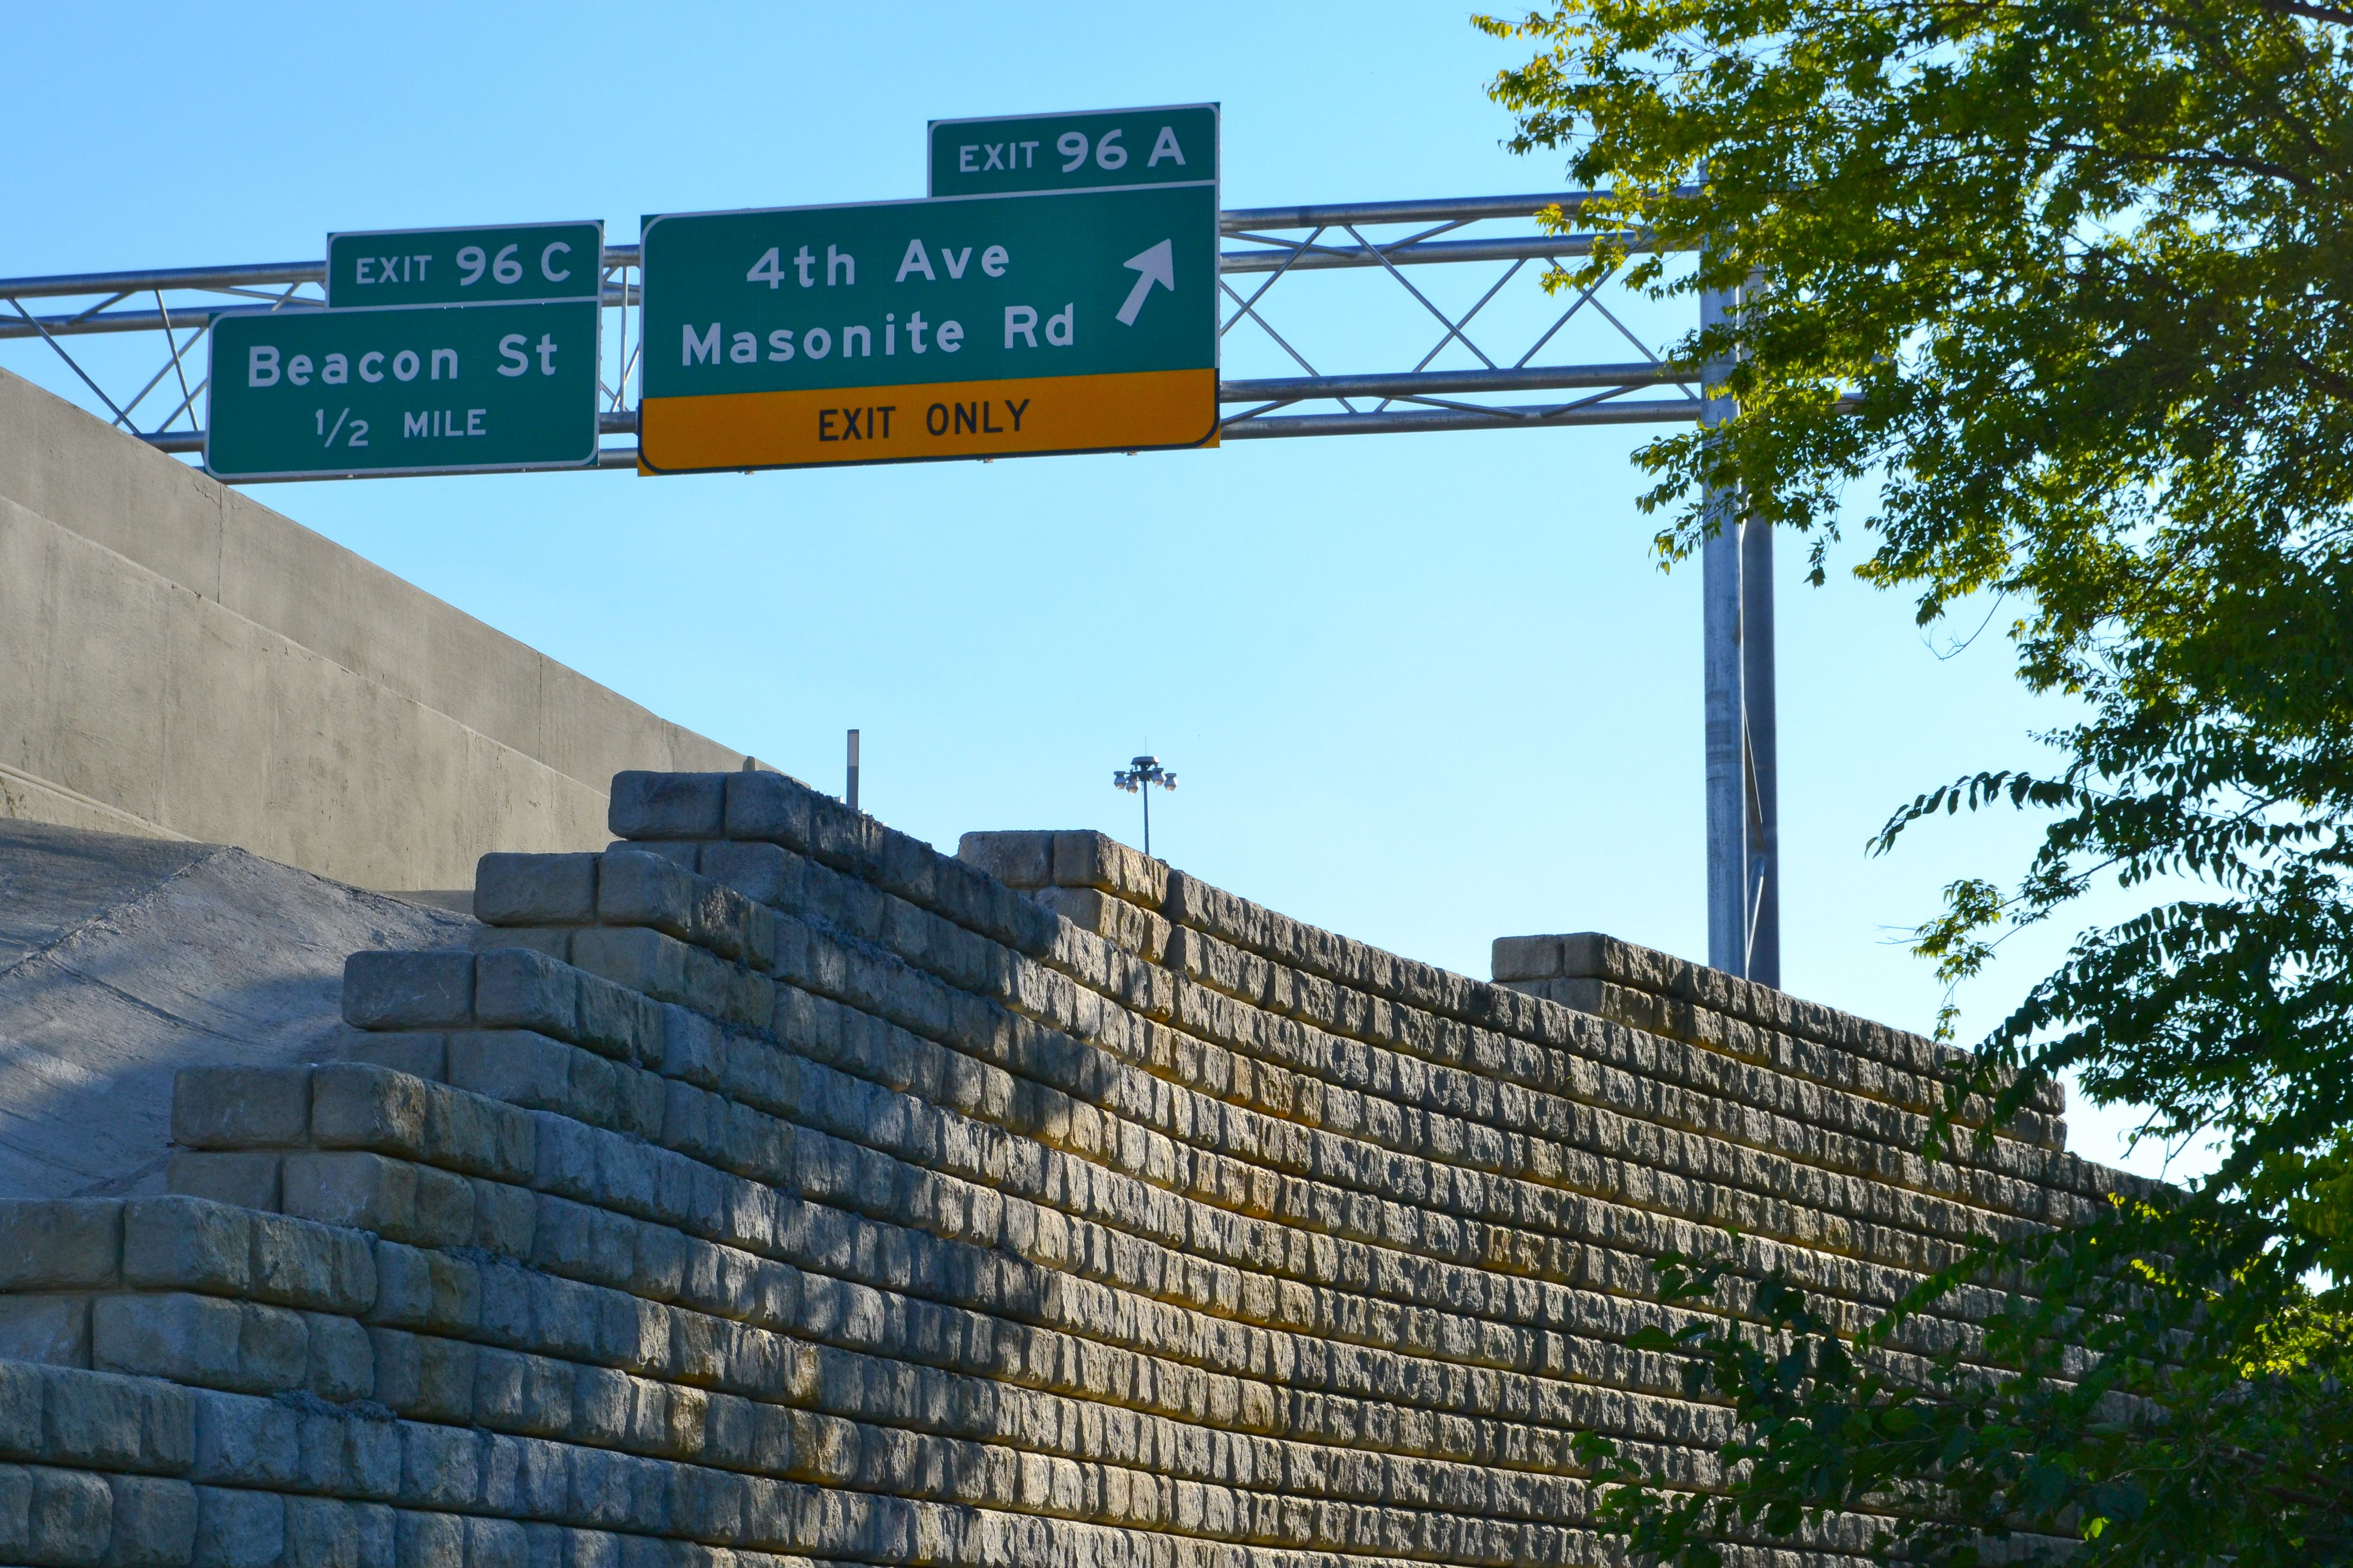 Tall Cobblestone retaining wall with highway signs